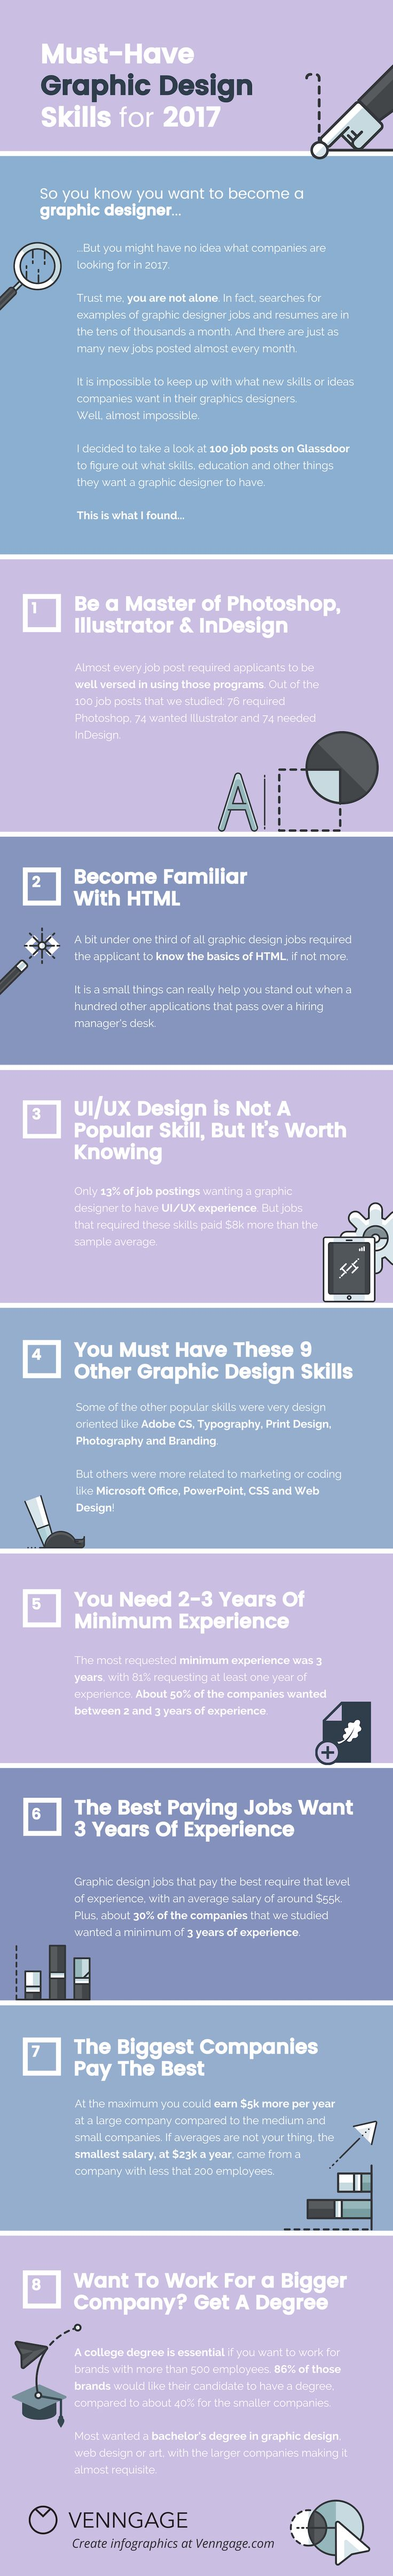 Ux solutions digital art director and motion designer based in noosa - 12 Graphic Design Skills You Need To Be Hired